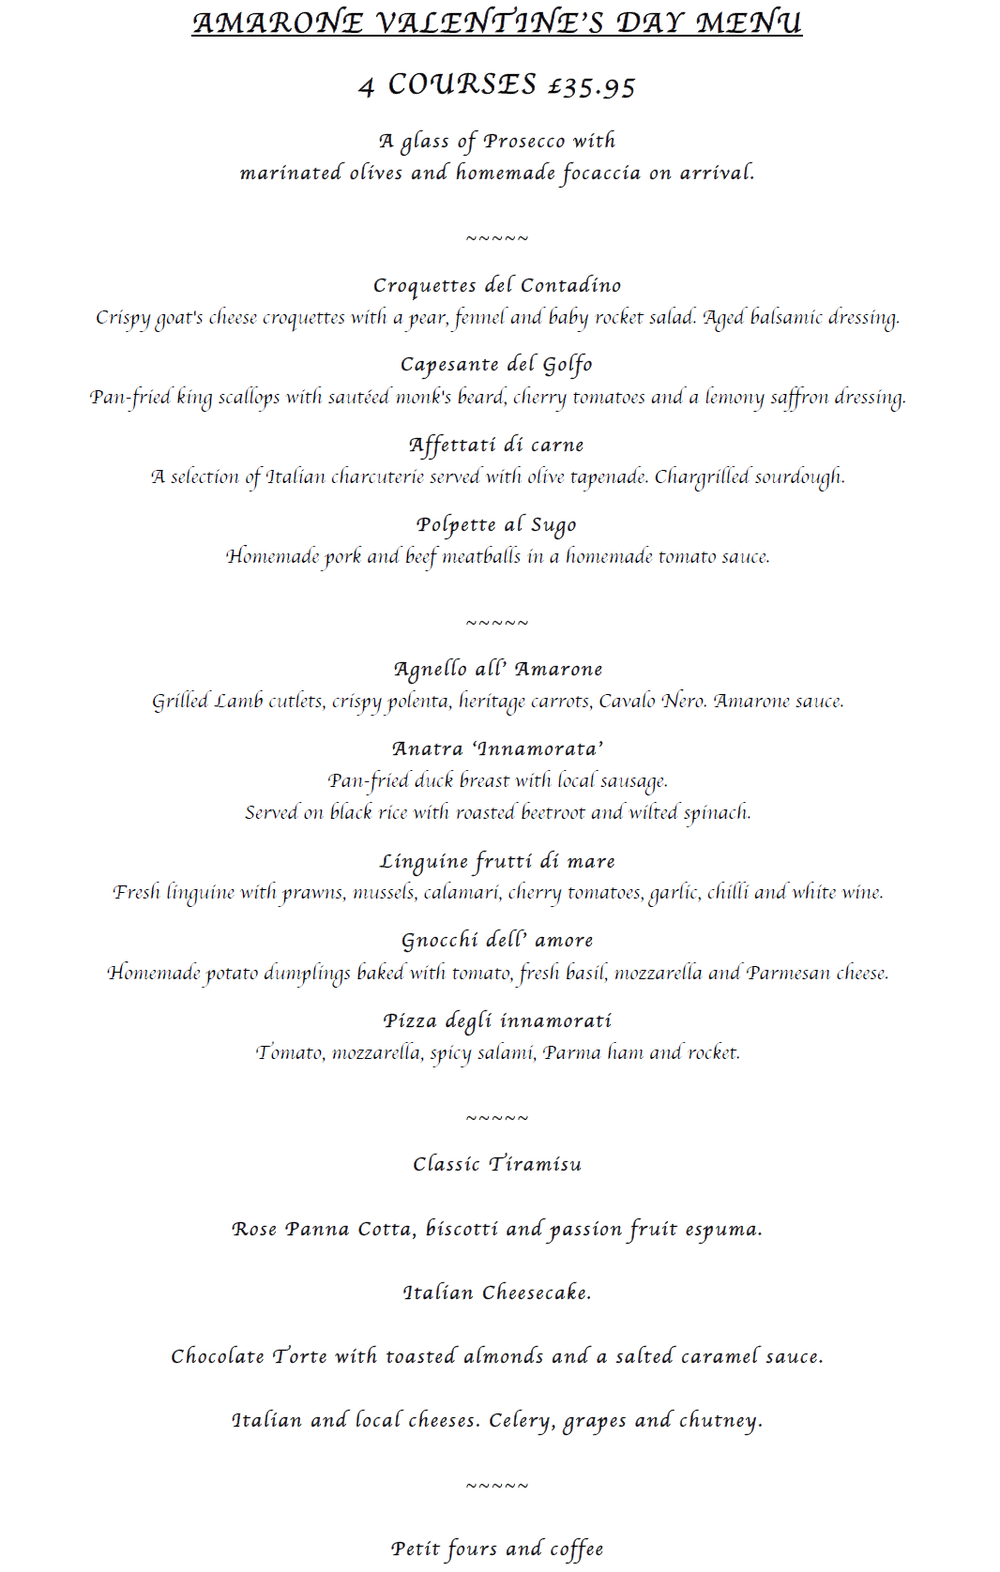 Amarone Valentines Day Menu